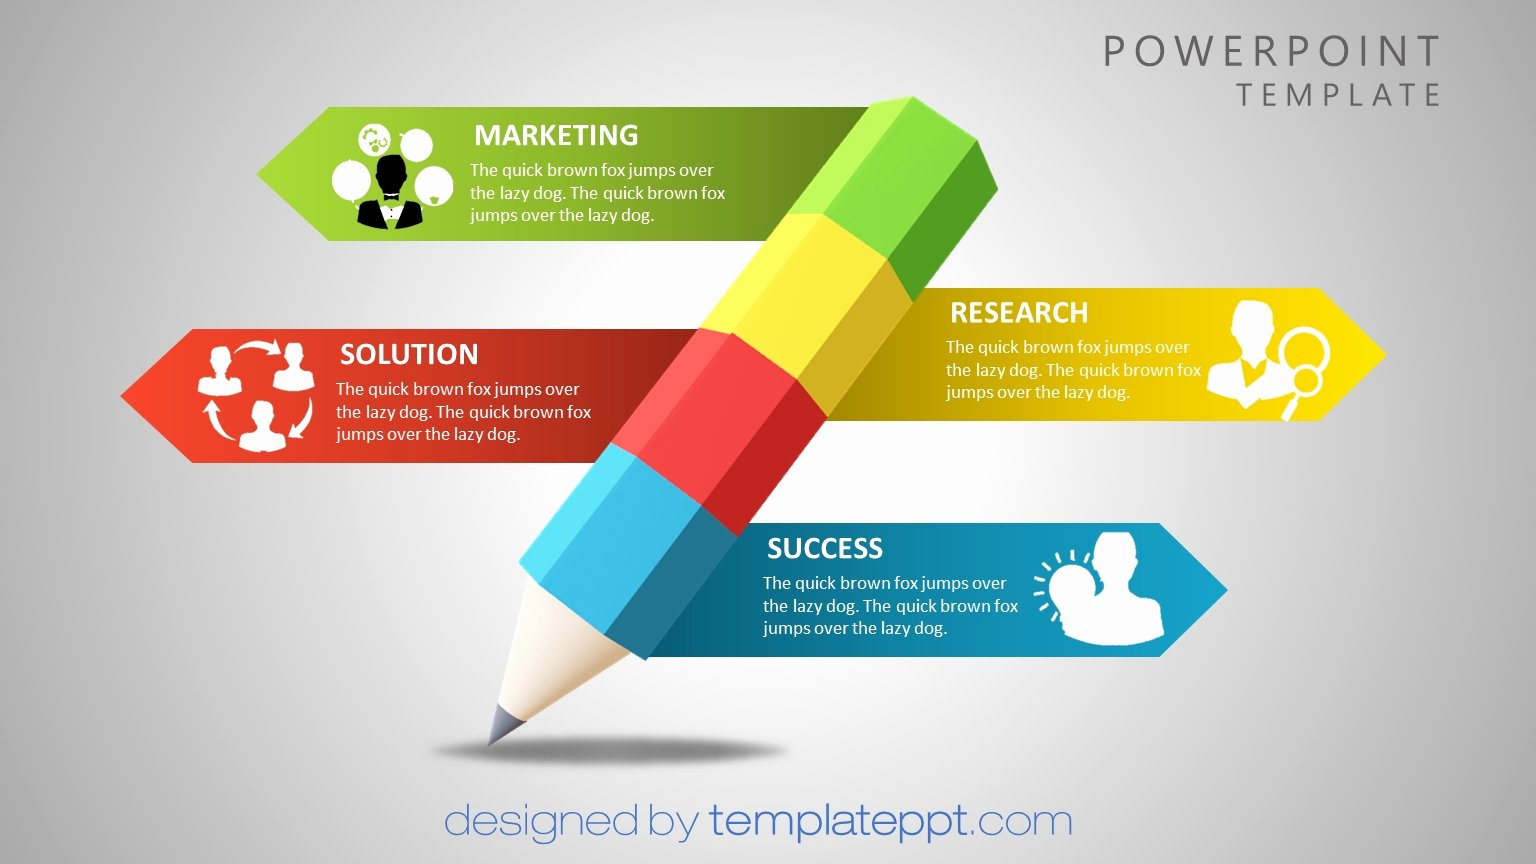 Template Powerpoint Free Download